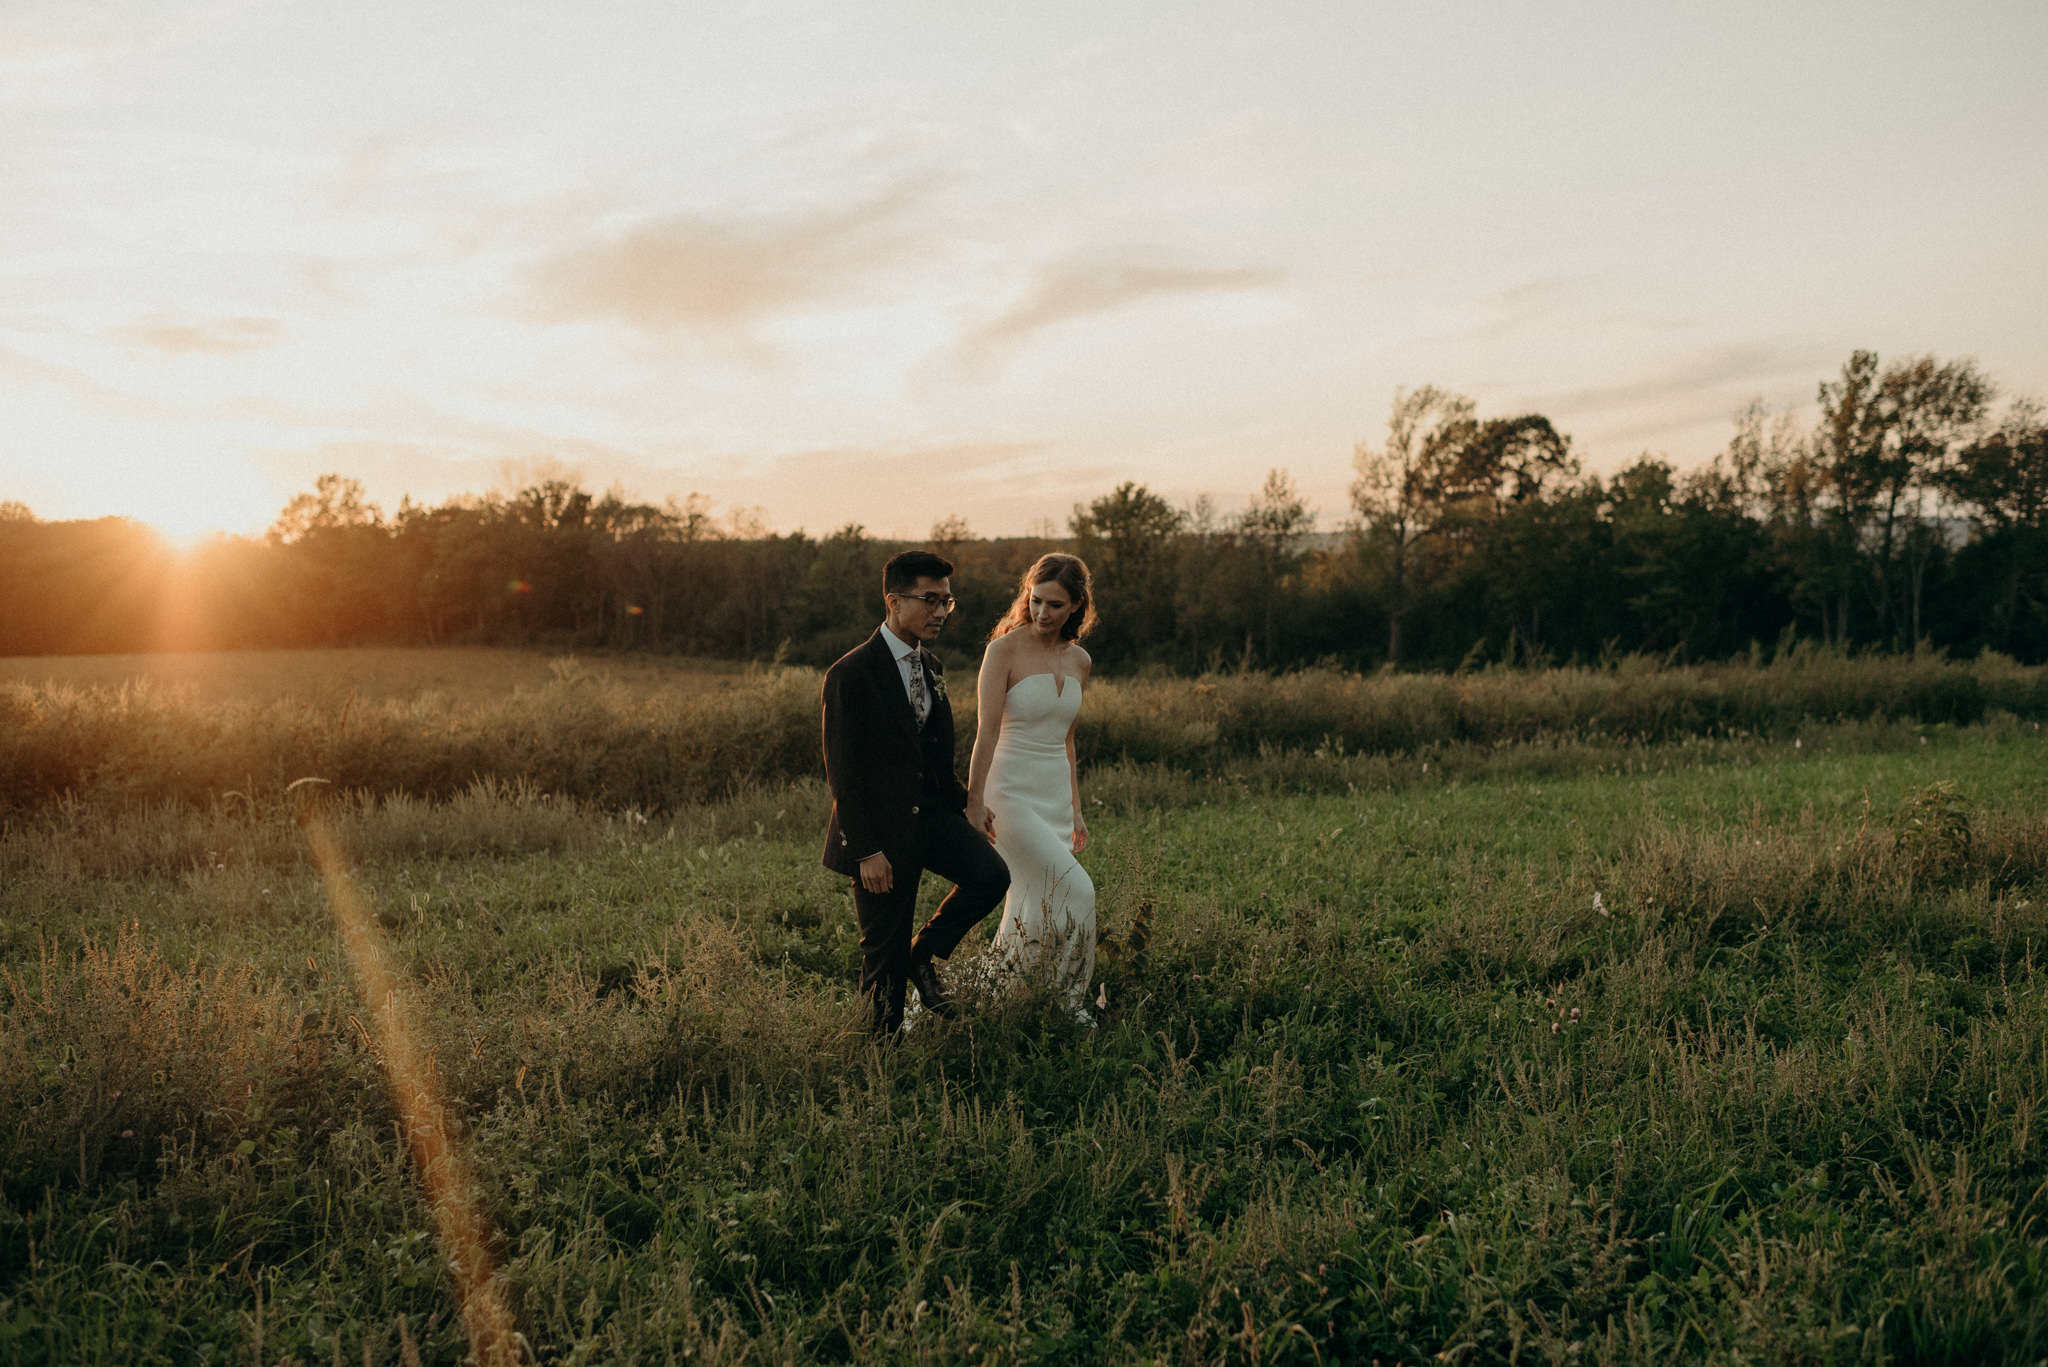 Wedding portraits in a field at sunset. Good Family Farms wedding.